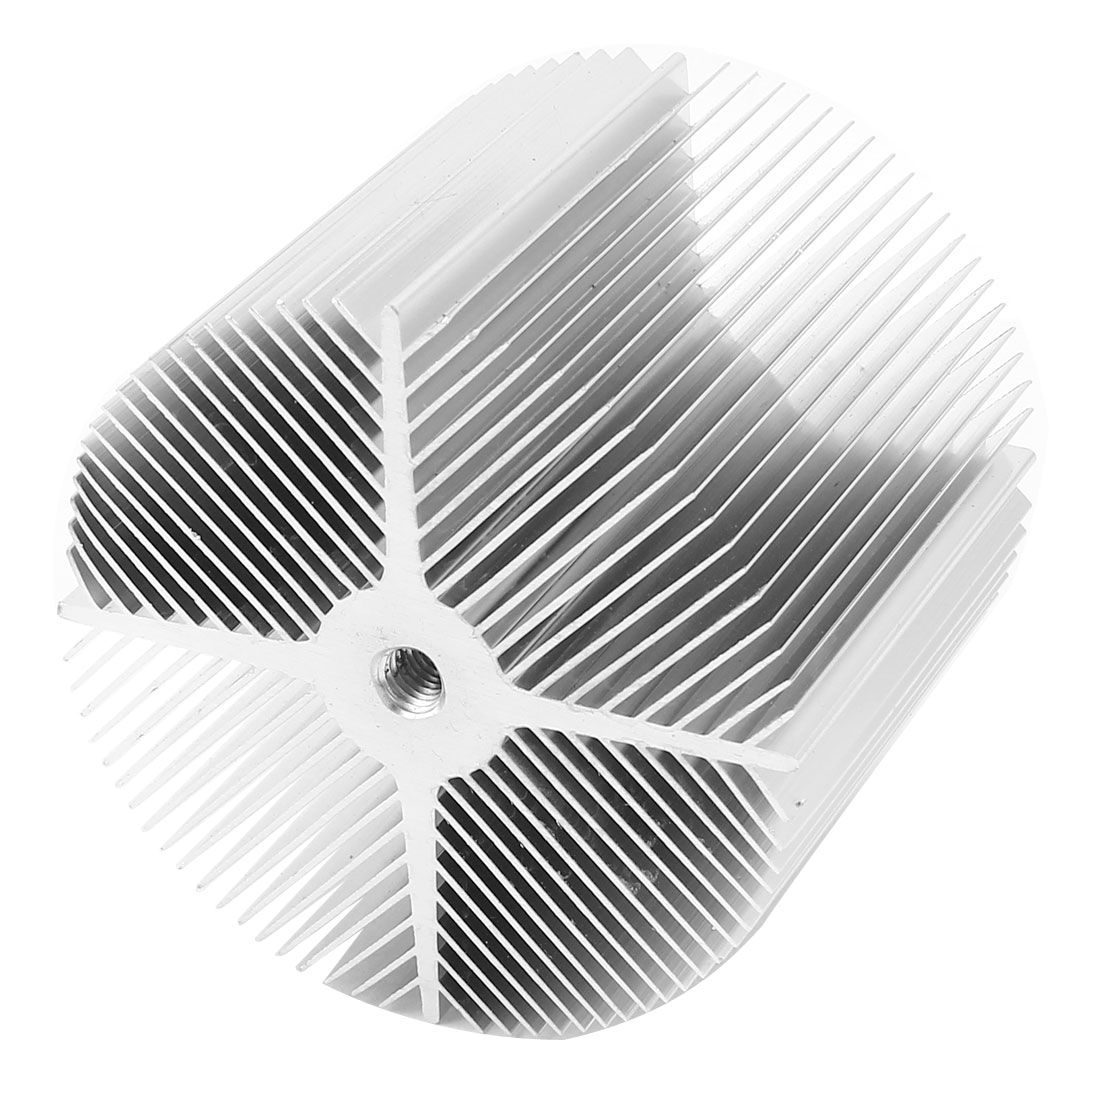 Silver Tone Aluminum Heat Sink Heatsink 90x76mm for LED Light Lamp